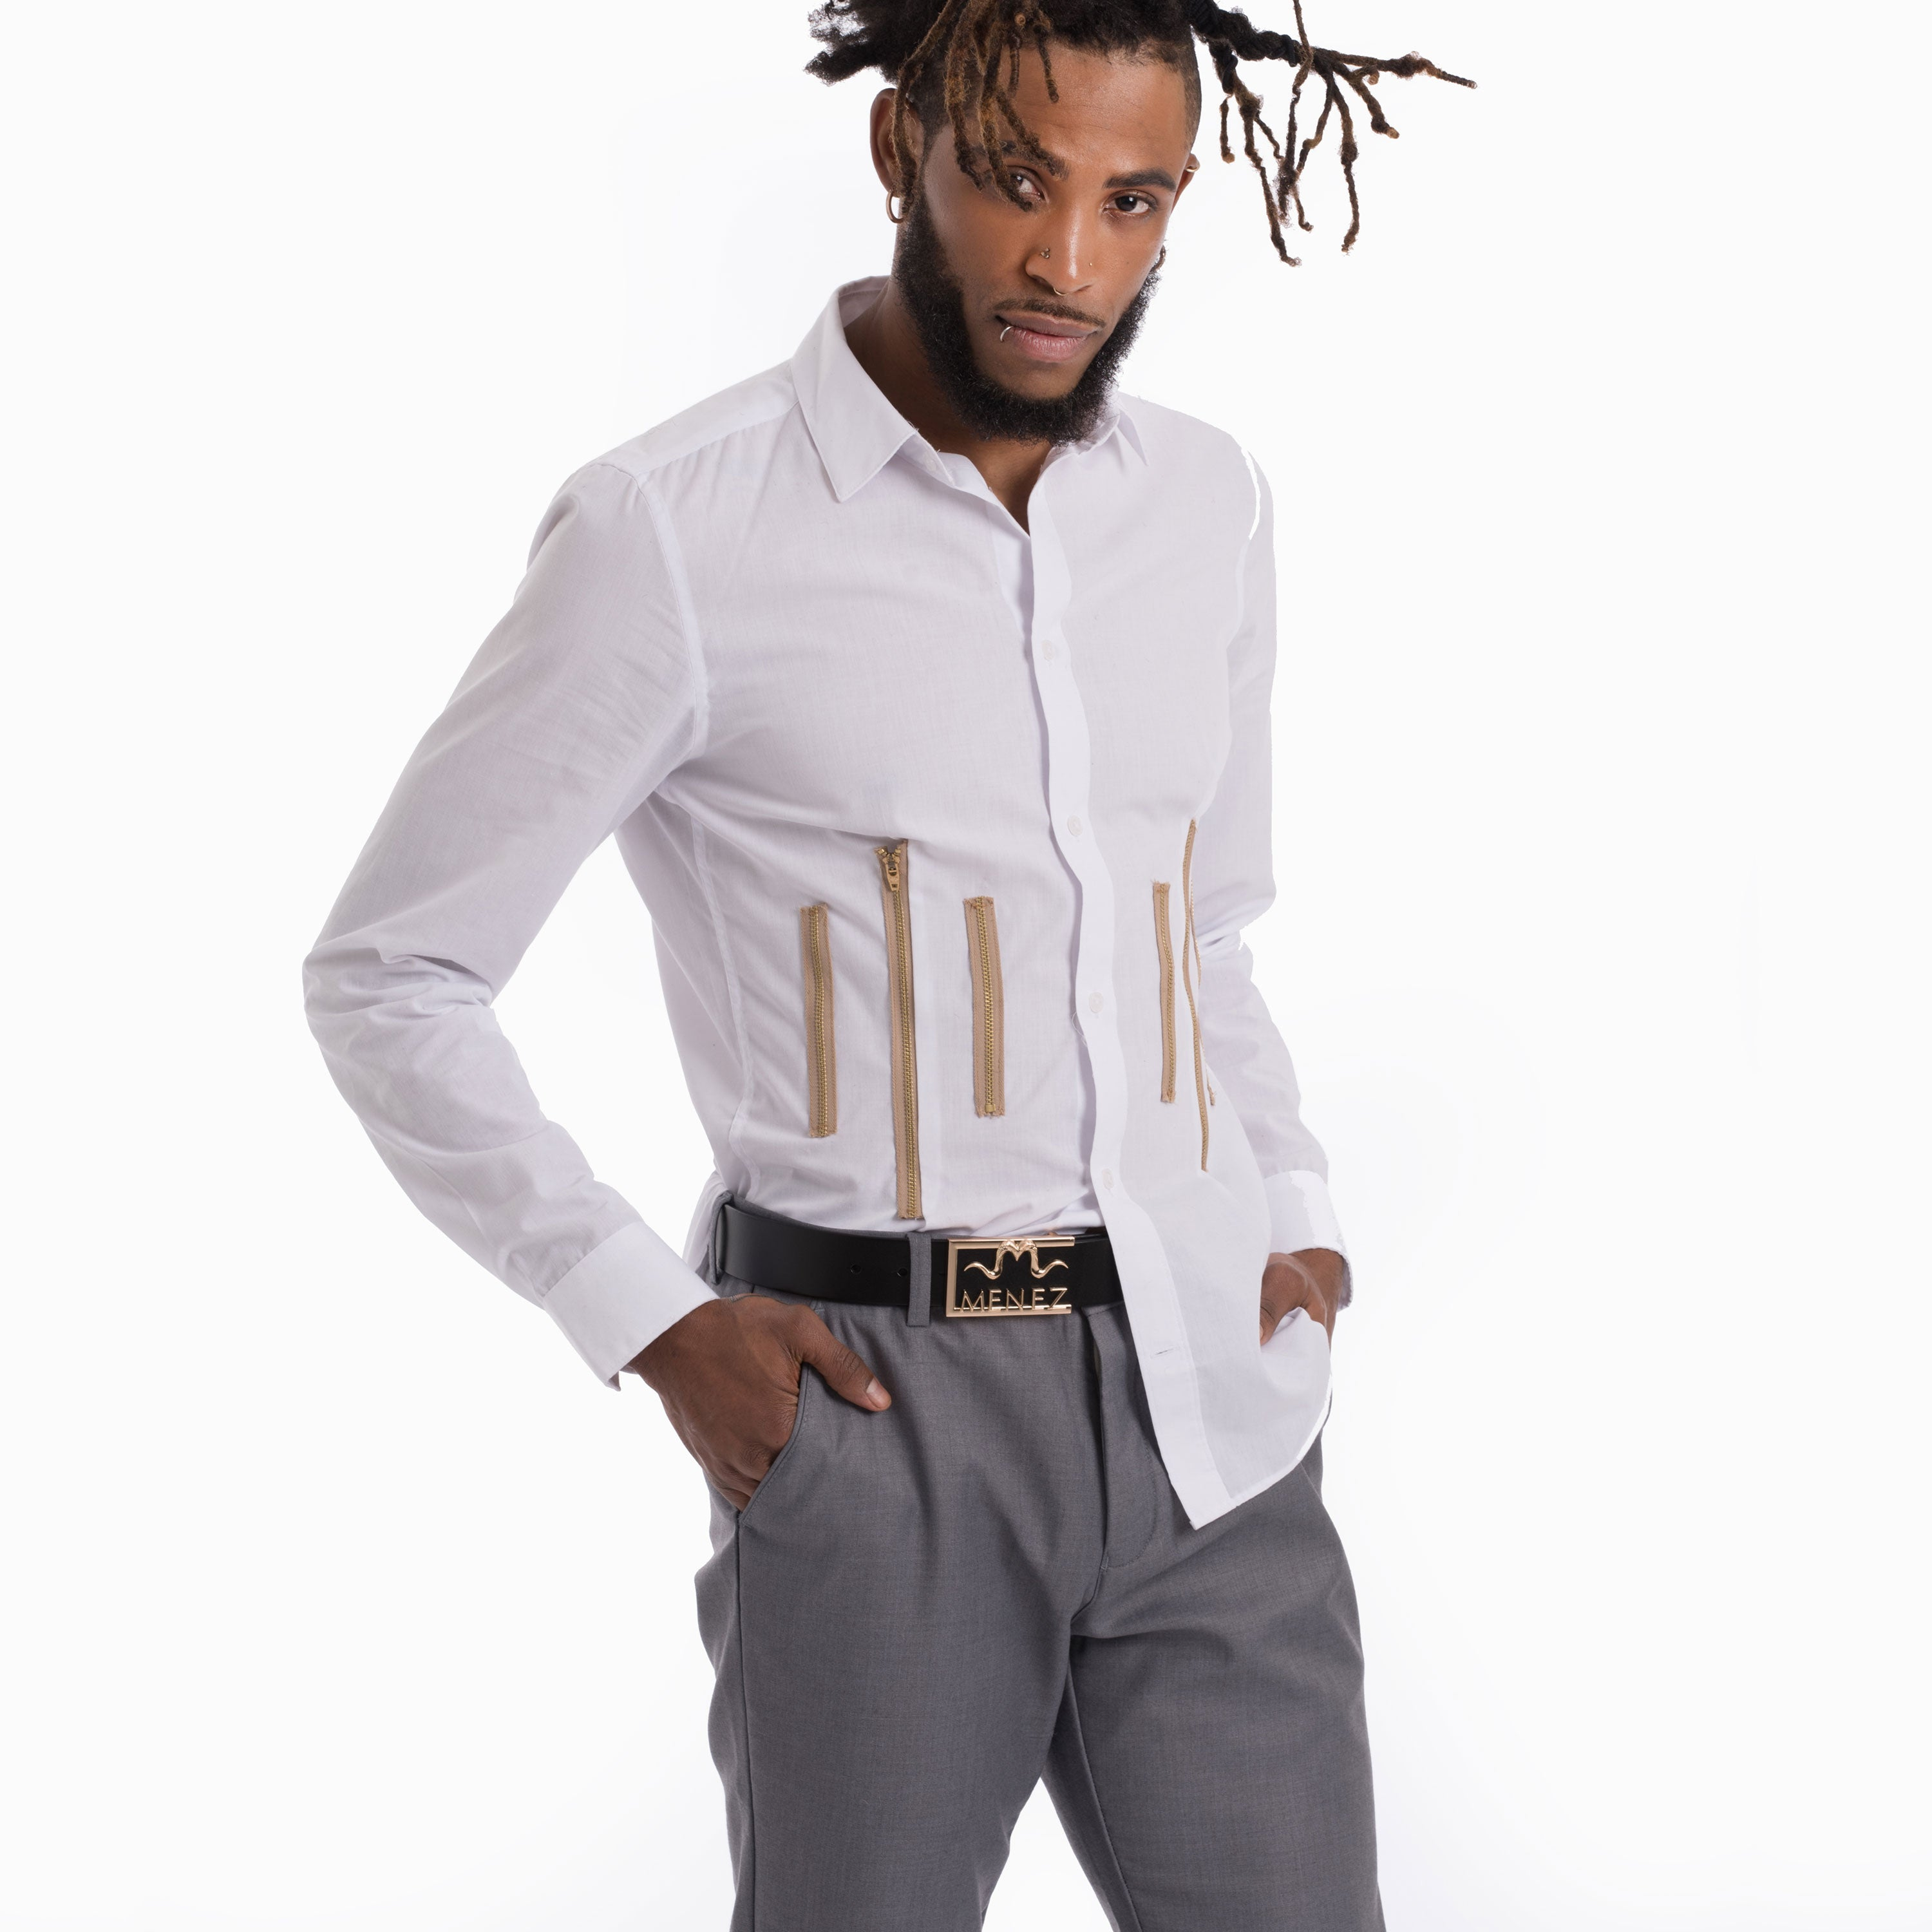 MENEZ WHITE DRESS SHIRT WITH ZIPPERS - MENEZ